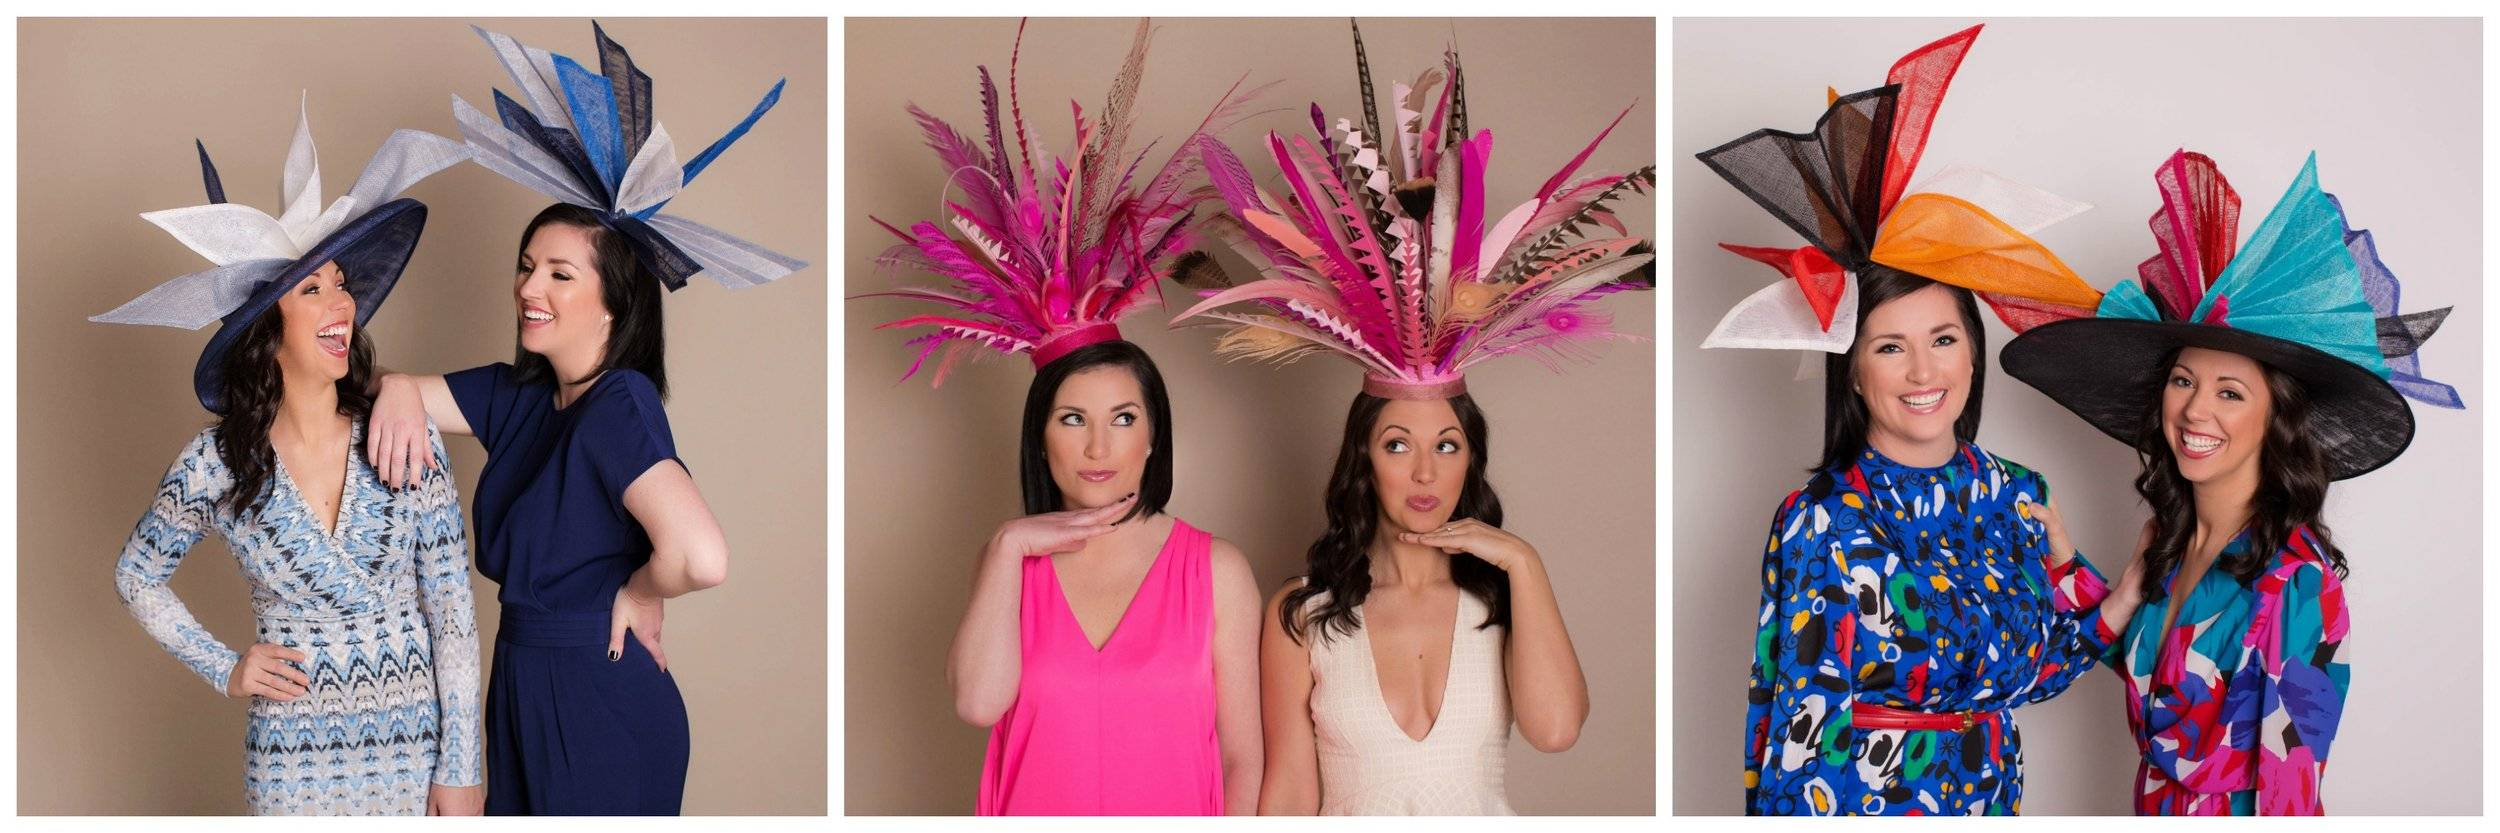 The Hat Girls Design And Create Custom Headwear For All Occasions Specializing In The Kentucky Derby The Designers Kate And Rachel Are Louisville